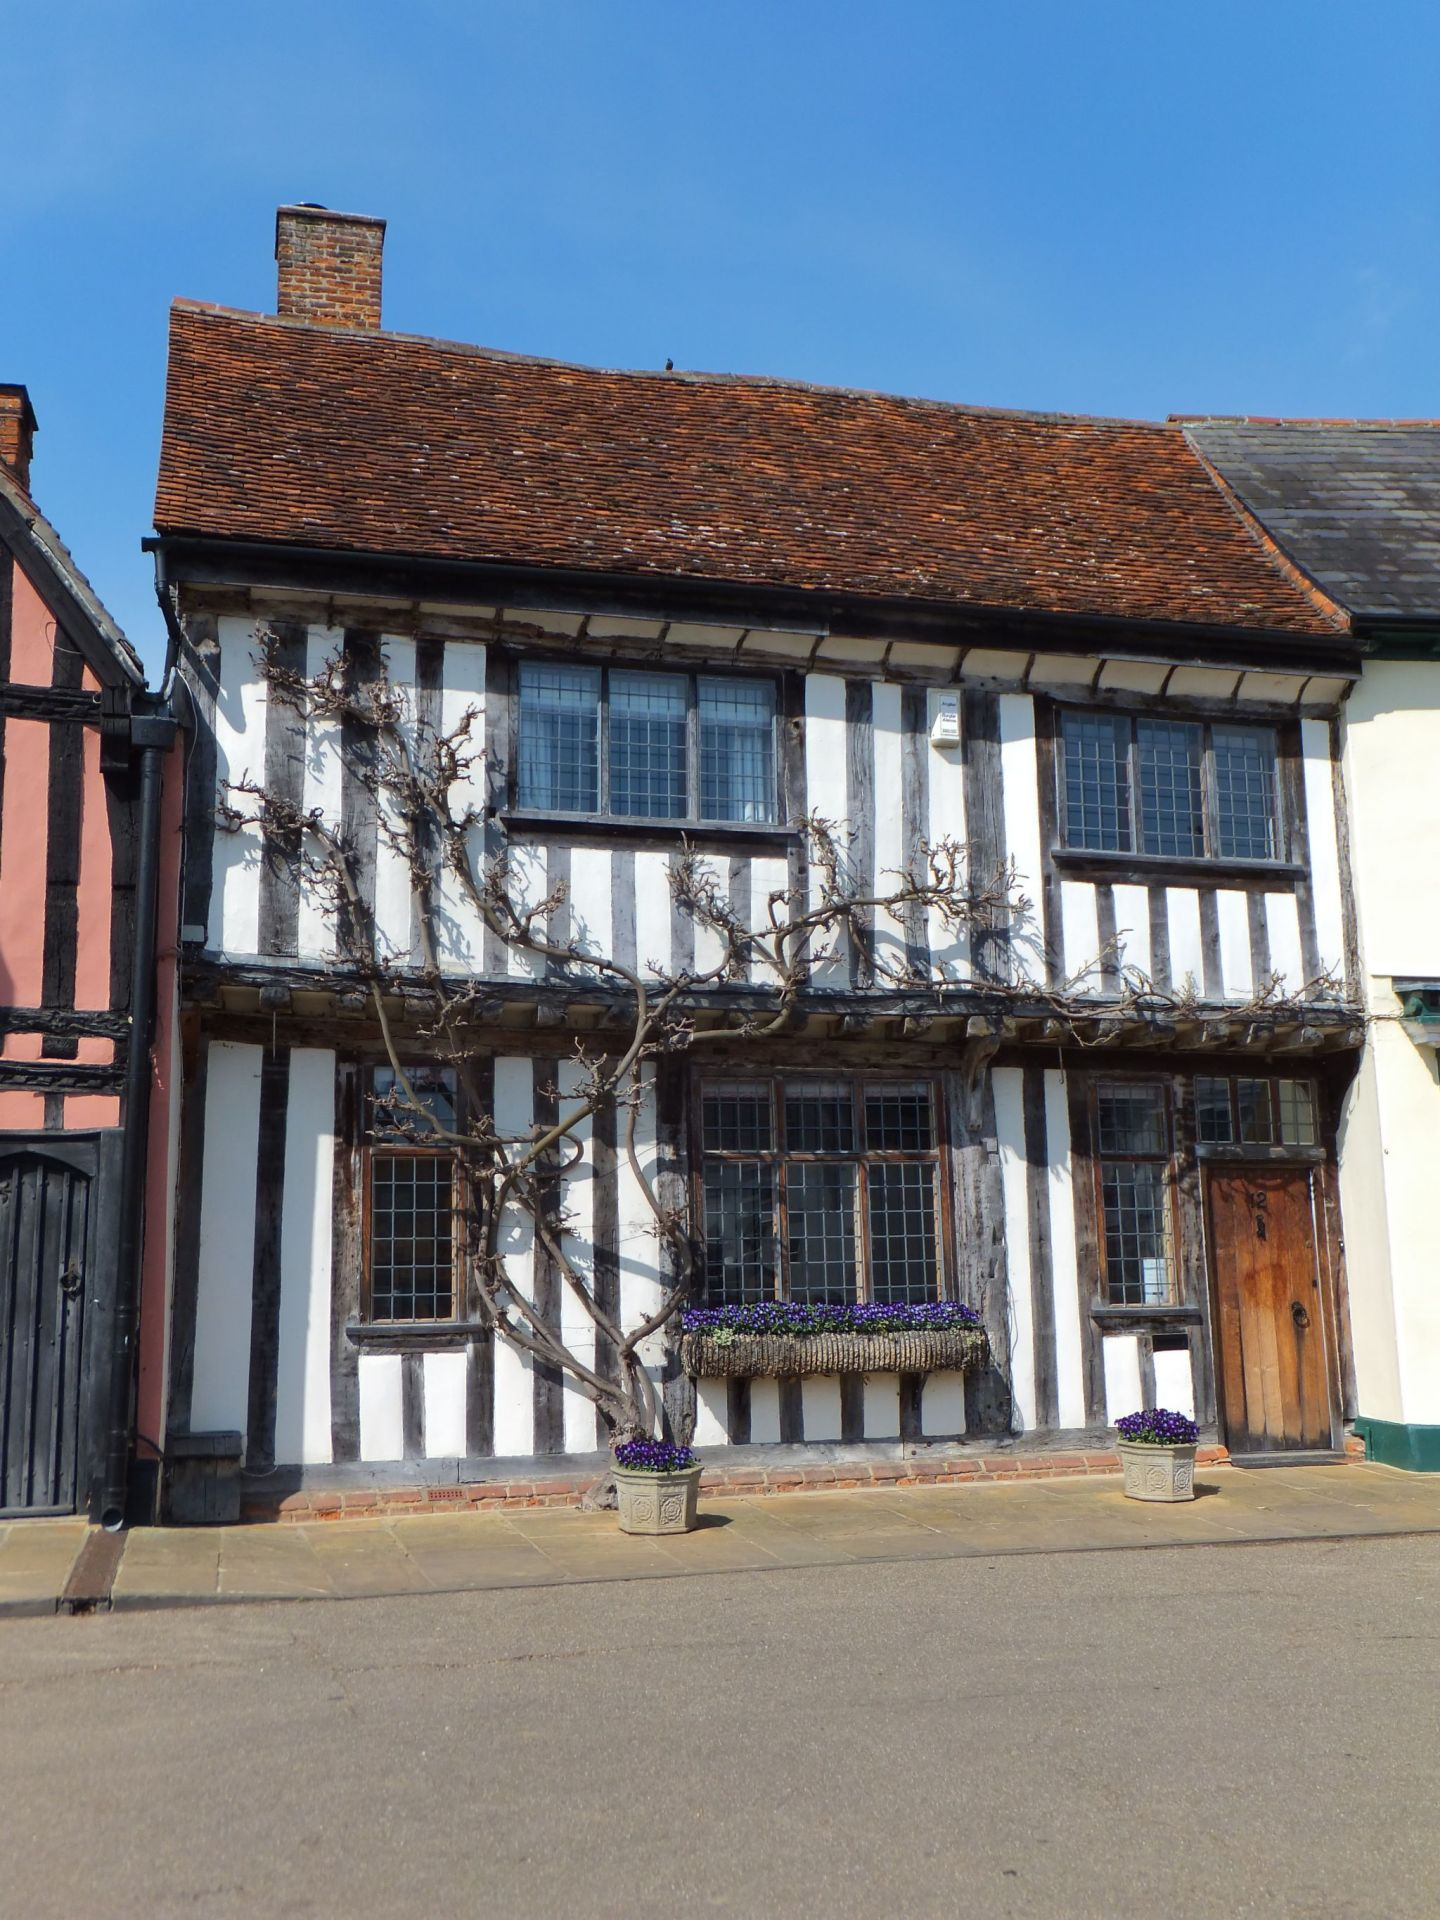 Visiting Lavenham: A day out in Suffolk